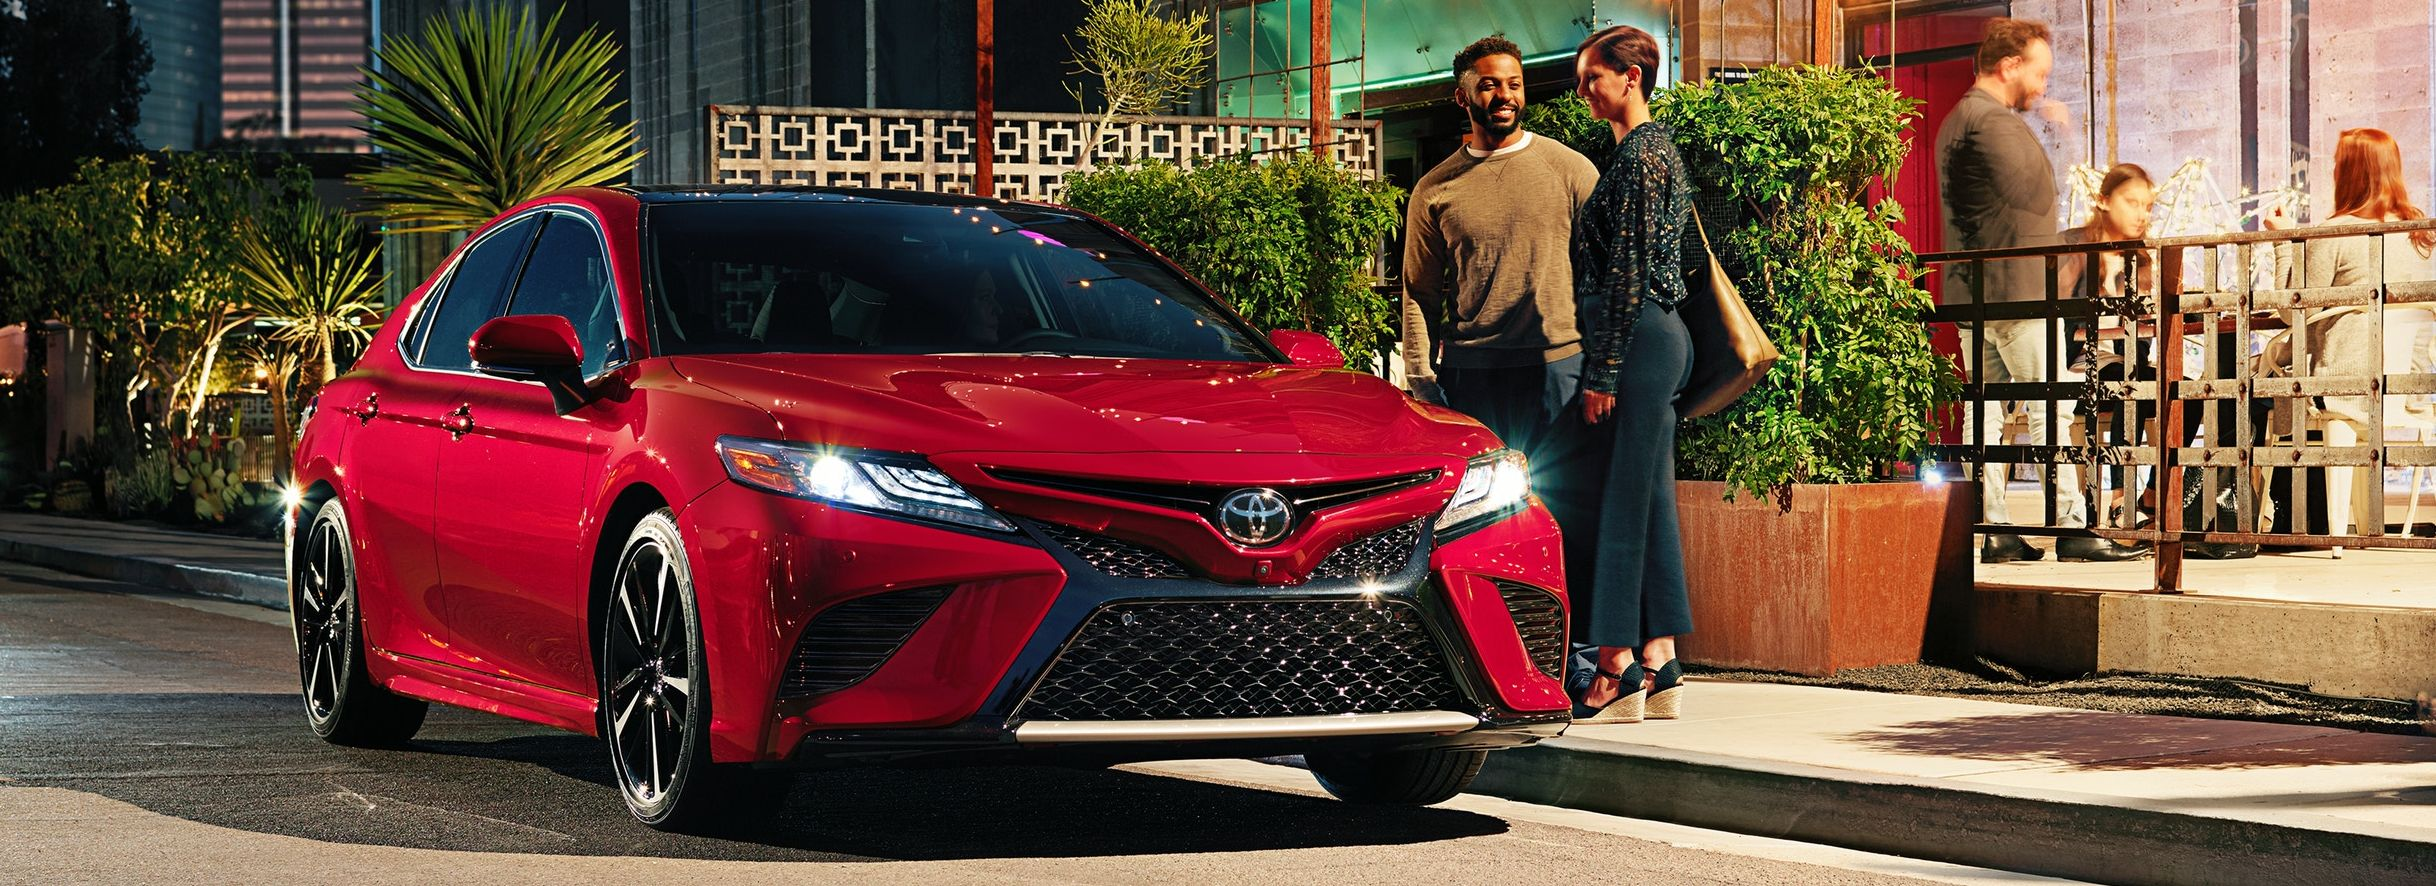 2019 Toyota Camry for Sale near Overland Park, KS